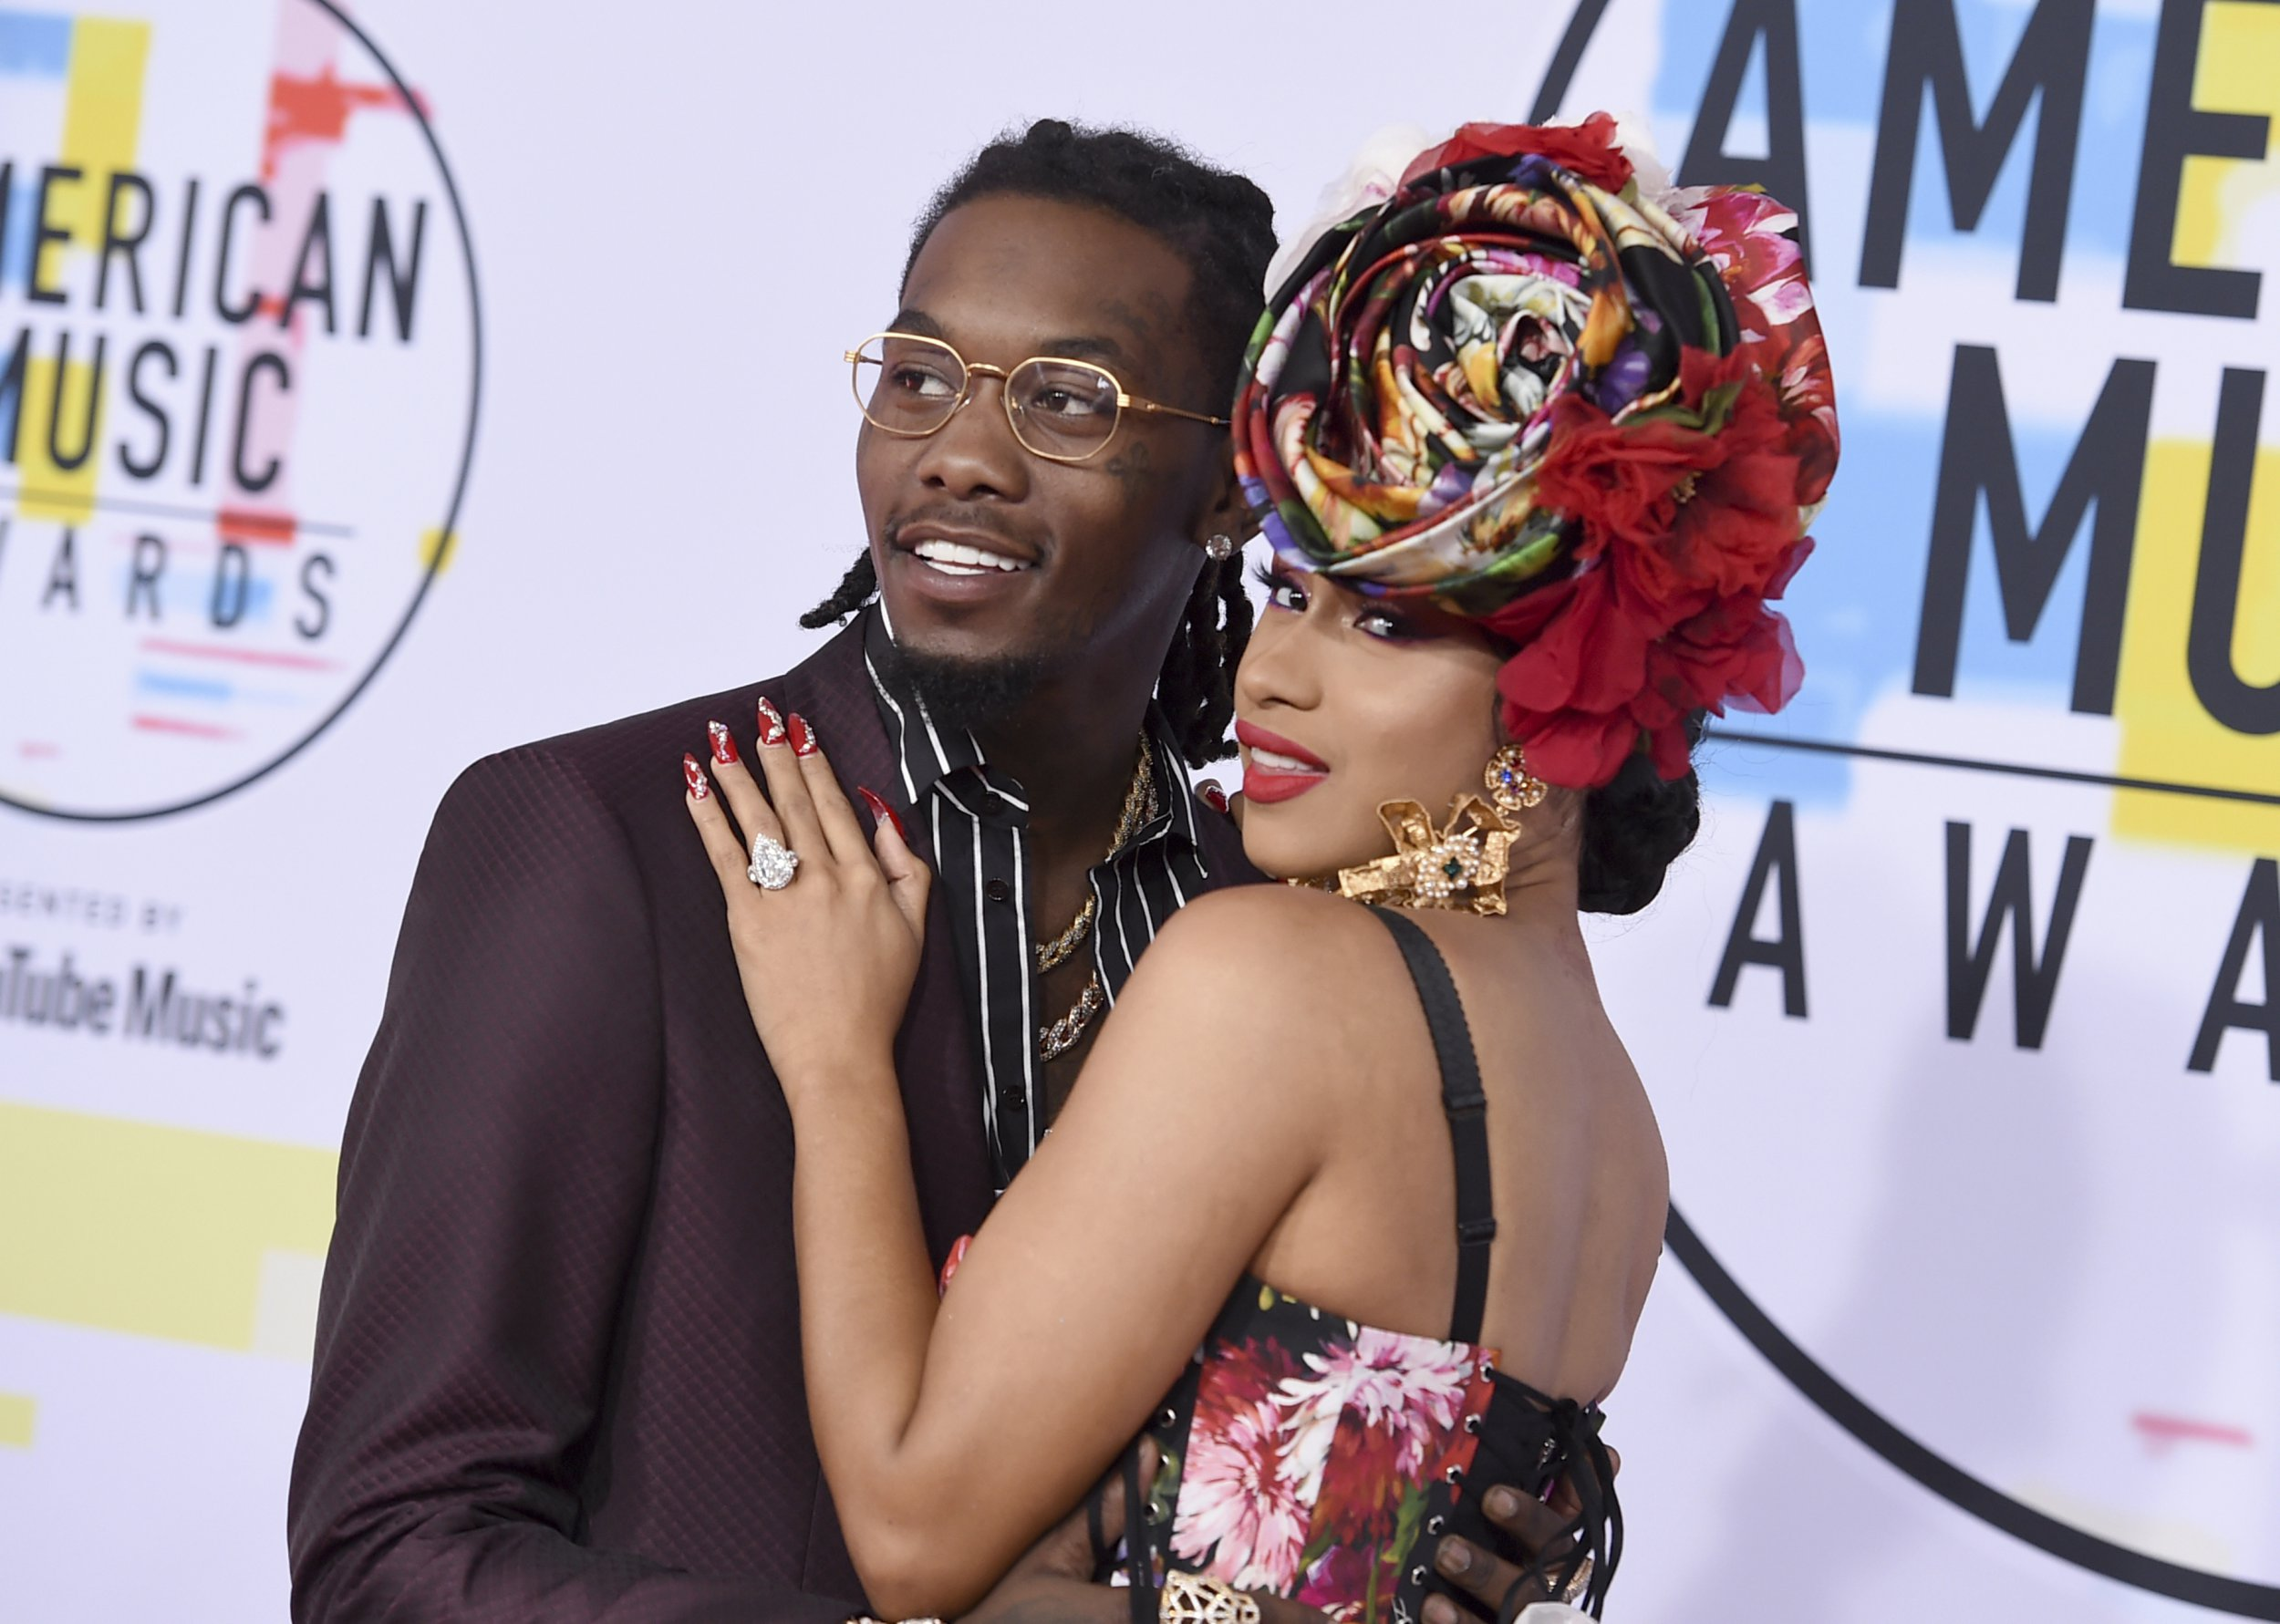 Cardi B reveals she wants more kids as she works on Offset relationship